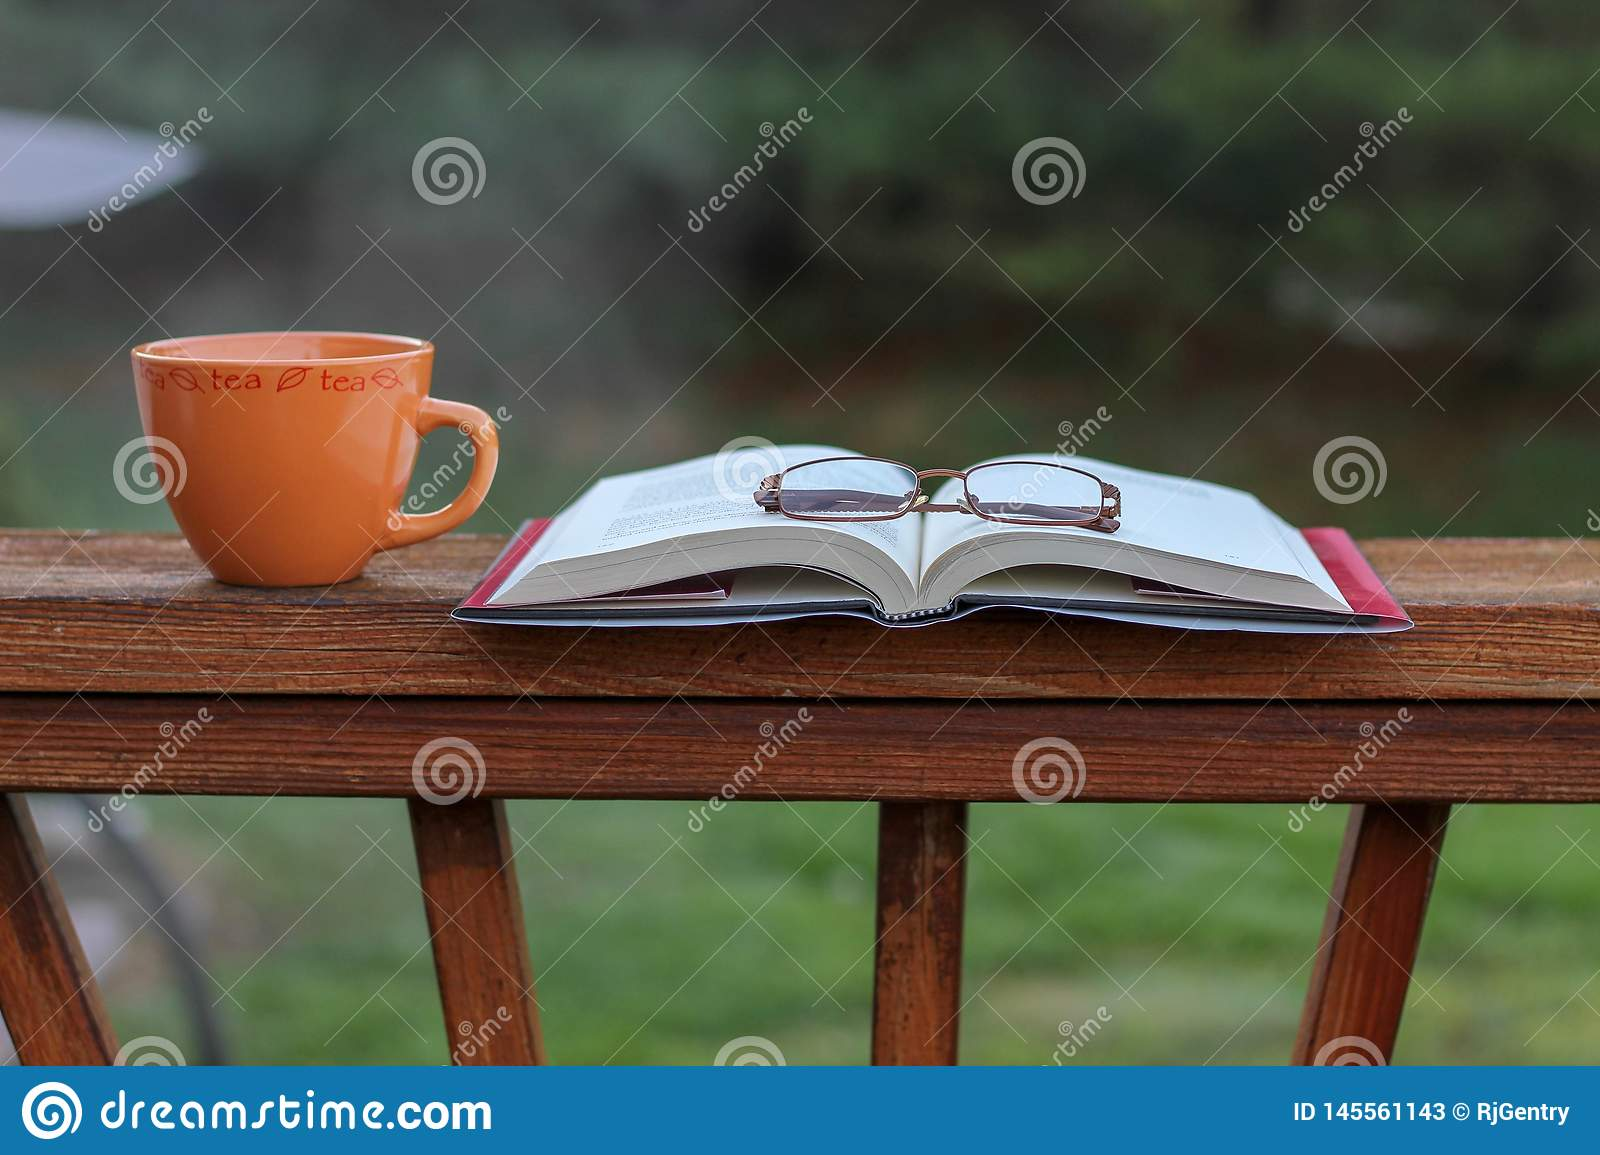 I'm starting my day with a good book and a cup of tea